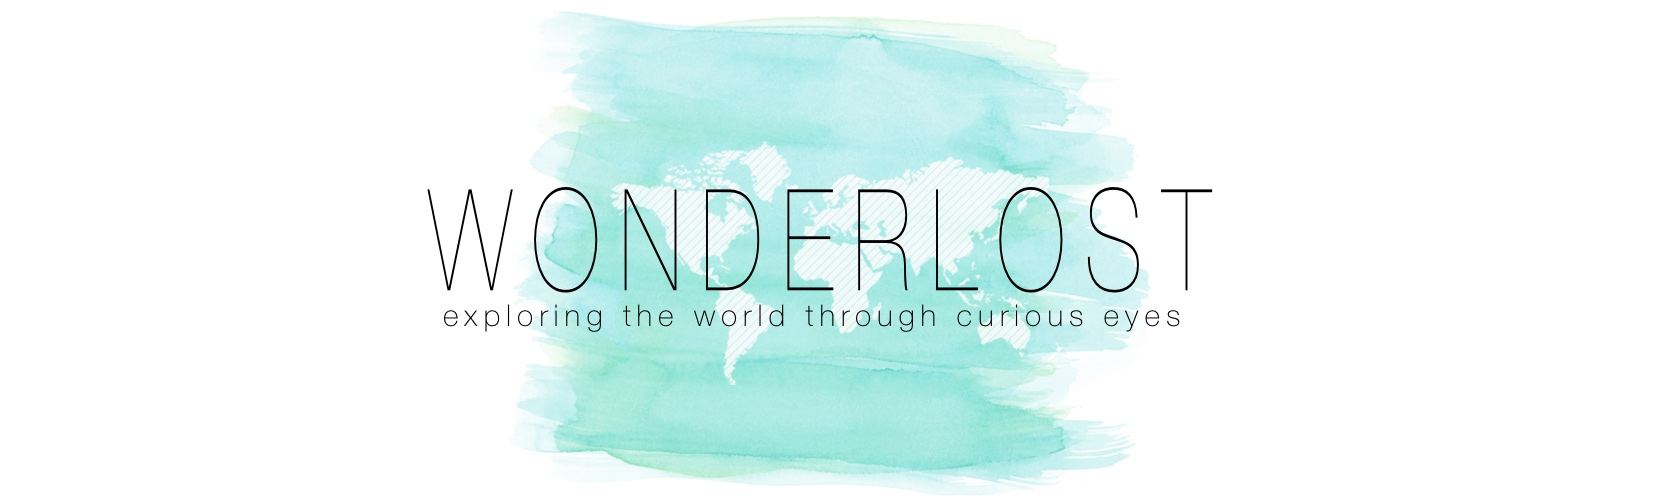 Wonderlost Travel Blog